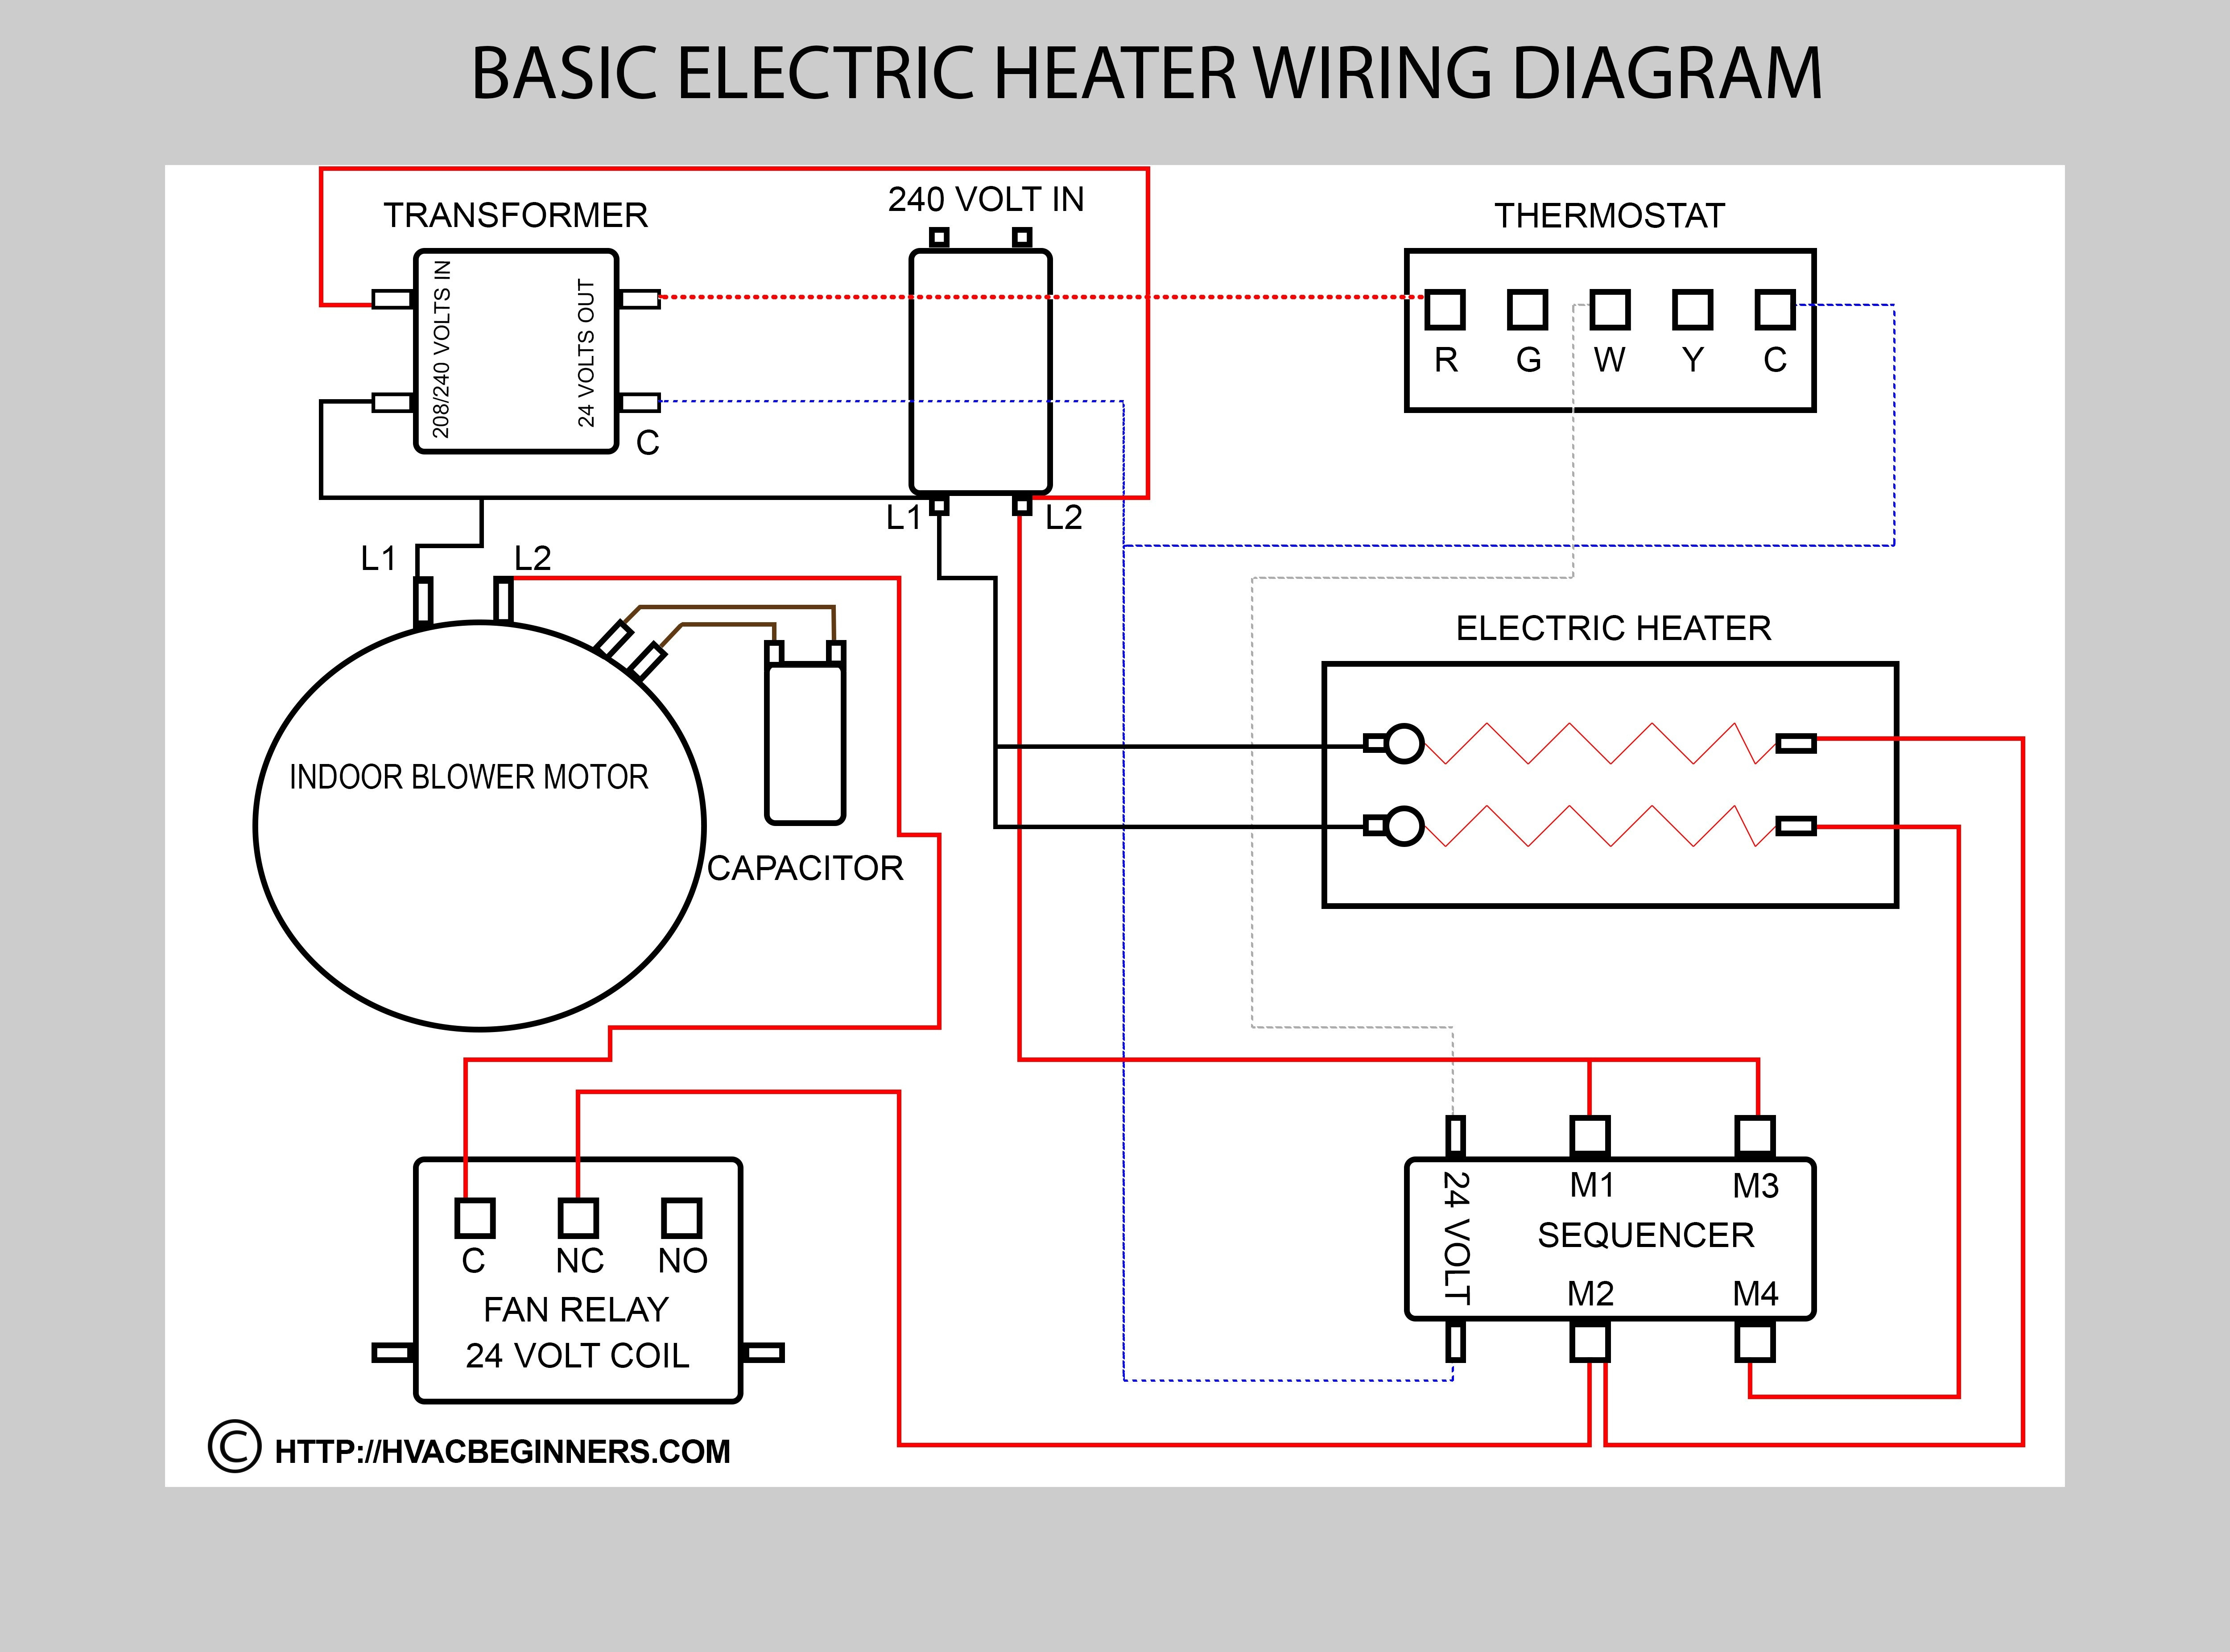 dayton unit heater wiring diagram Download-Wiring Diagram Electric Baseboard Heaters New Motor Heater Wiring Diagram Fresh Dayton Unit Heater Wiring Diagram 5-l